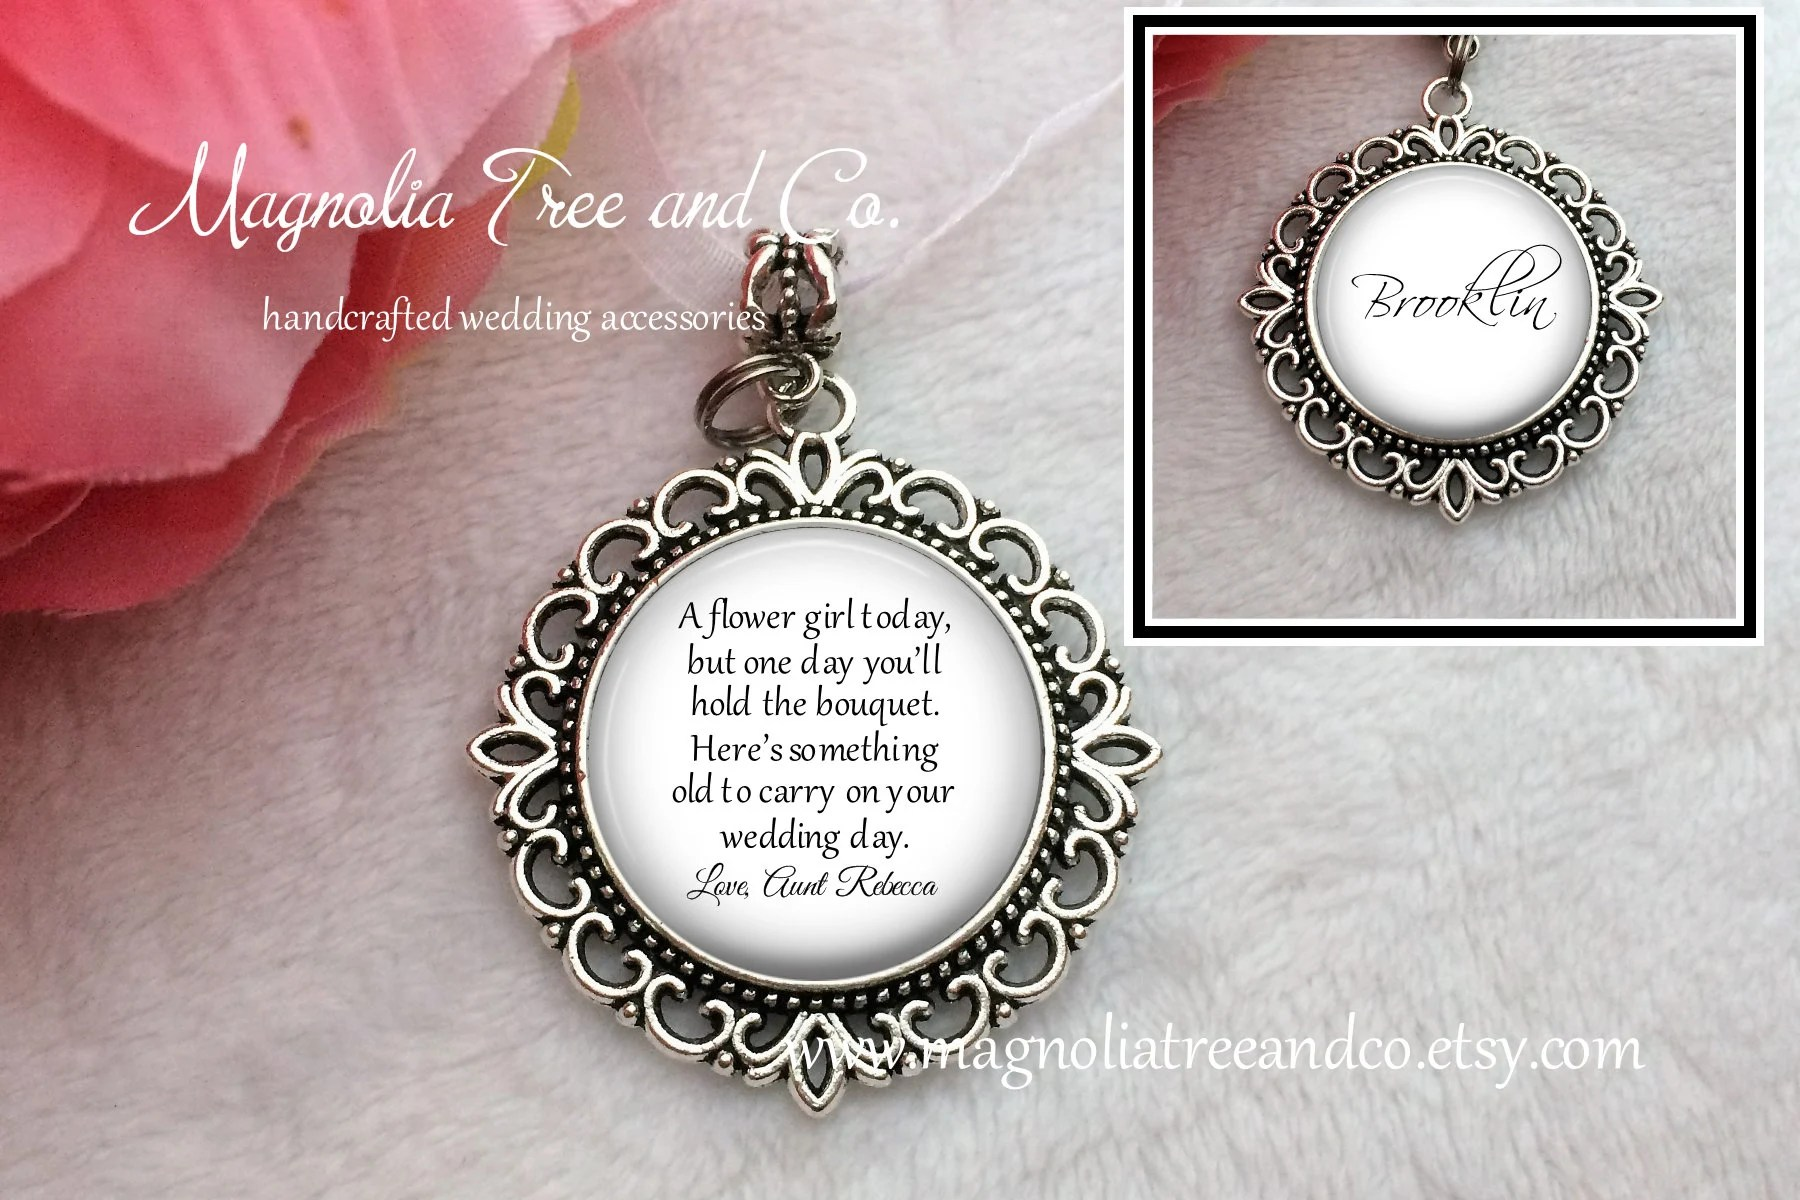 More colours                                                                                        Flower Girl or Bridesmaid Charm Pendant, Flowergirl Gift, Personalized Bouquet Charm, Wedding Flower Charm, Custom Name, One Day… KE04                                                                    MagnoliaTreeandCo                               5 out of 5 stars                                                                                                                                                                                                                                                          (3,374)                                                      CA$33.49                                                                   FREE delivery